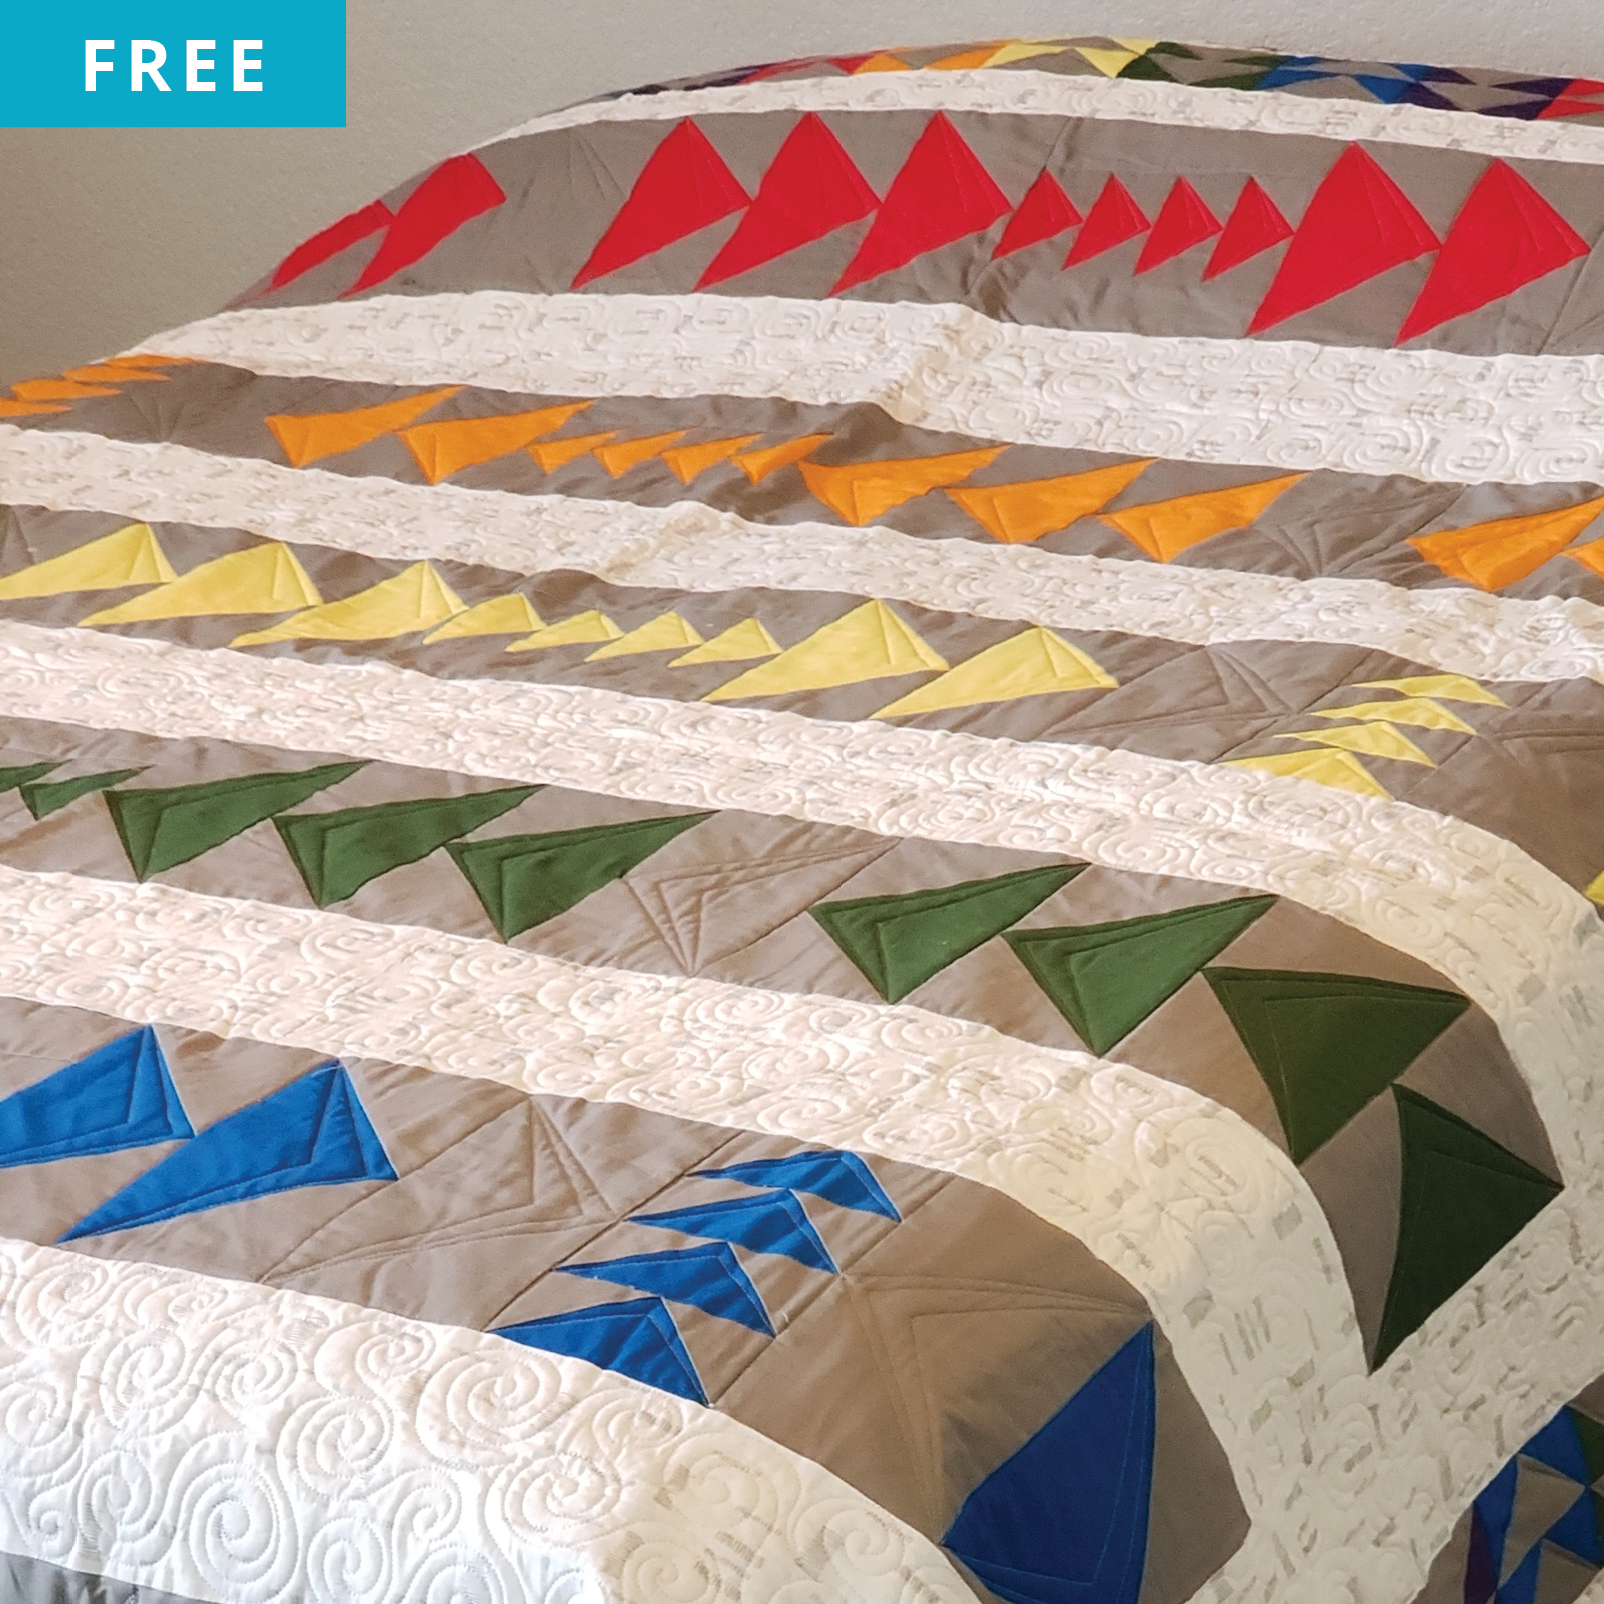 Free Quilt Pattern - Flying Geese Frenzy Quilt